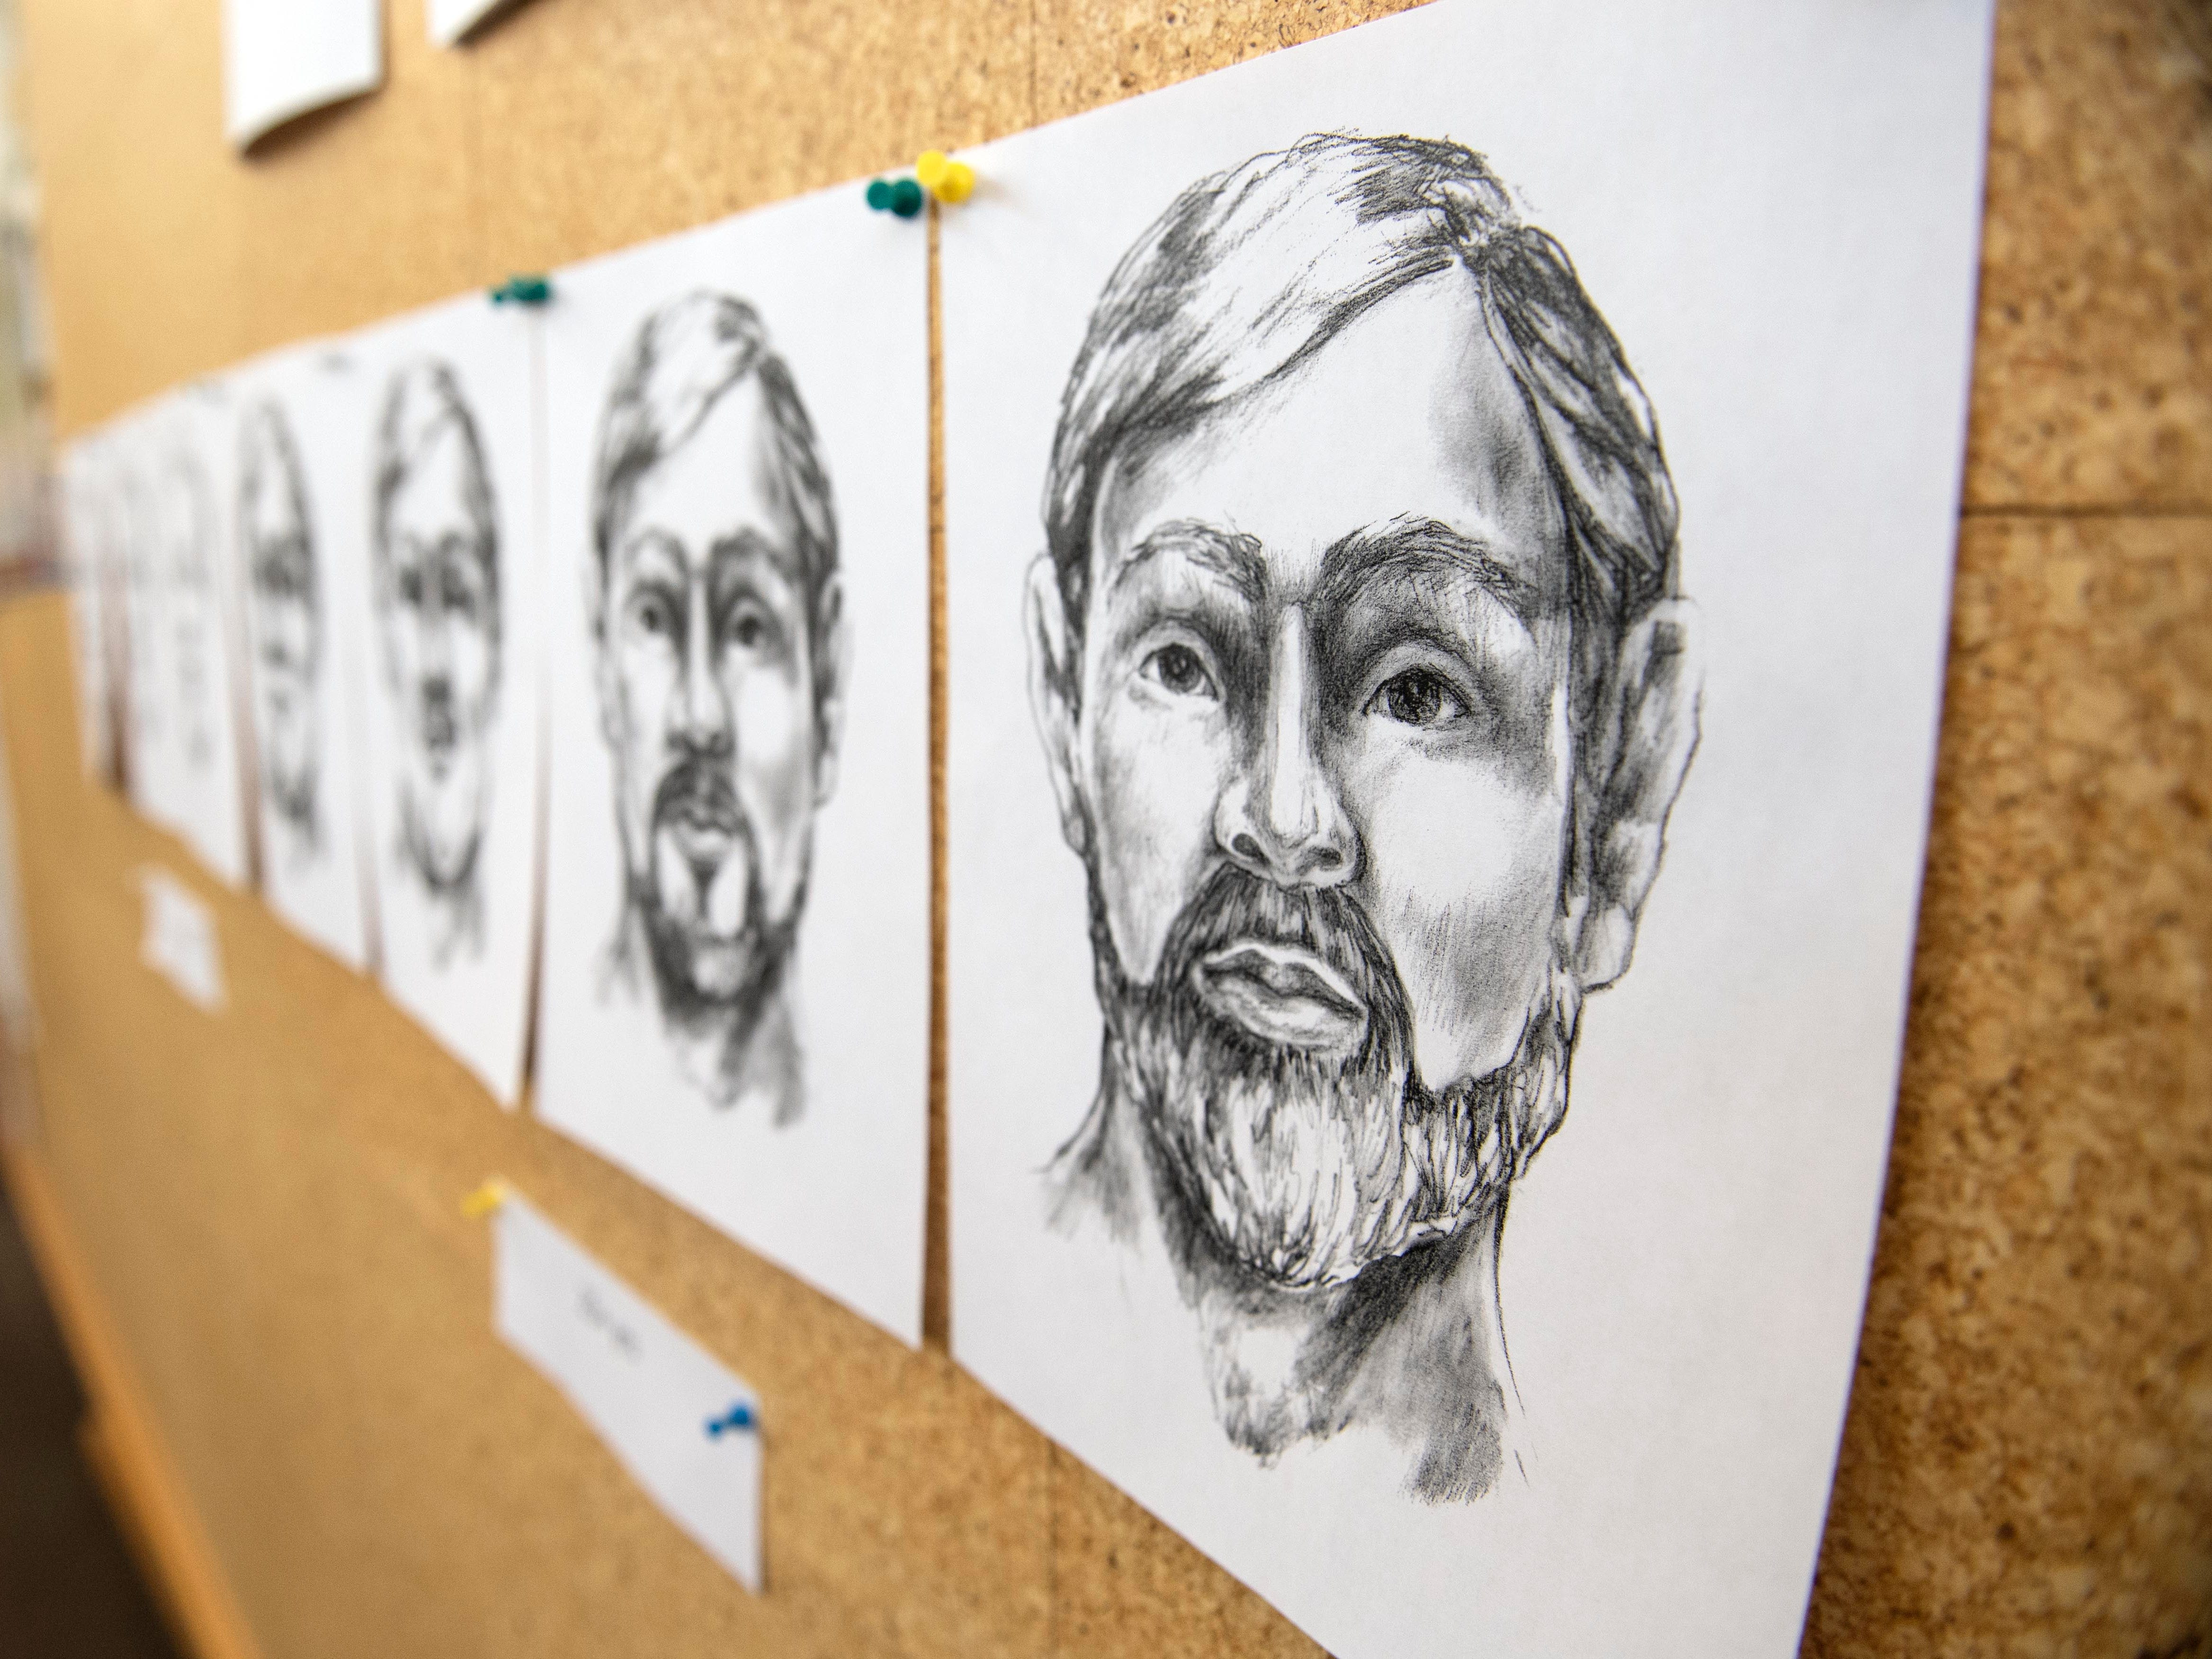 An artist's rendition of what the victim of a 2013 cold case homicide investigation might look like. The case began after skeletal remains were found at the intersection of Loucks and Haviland roads in November 2013. West Manchester Township Police held a press conference to show the new artist's drawings, Thursday, Dec. 6, 2018, along with a clay bust and a 3D-printed skull of the victim.